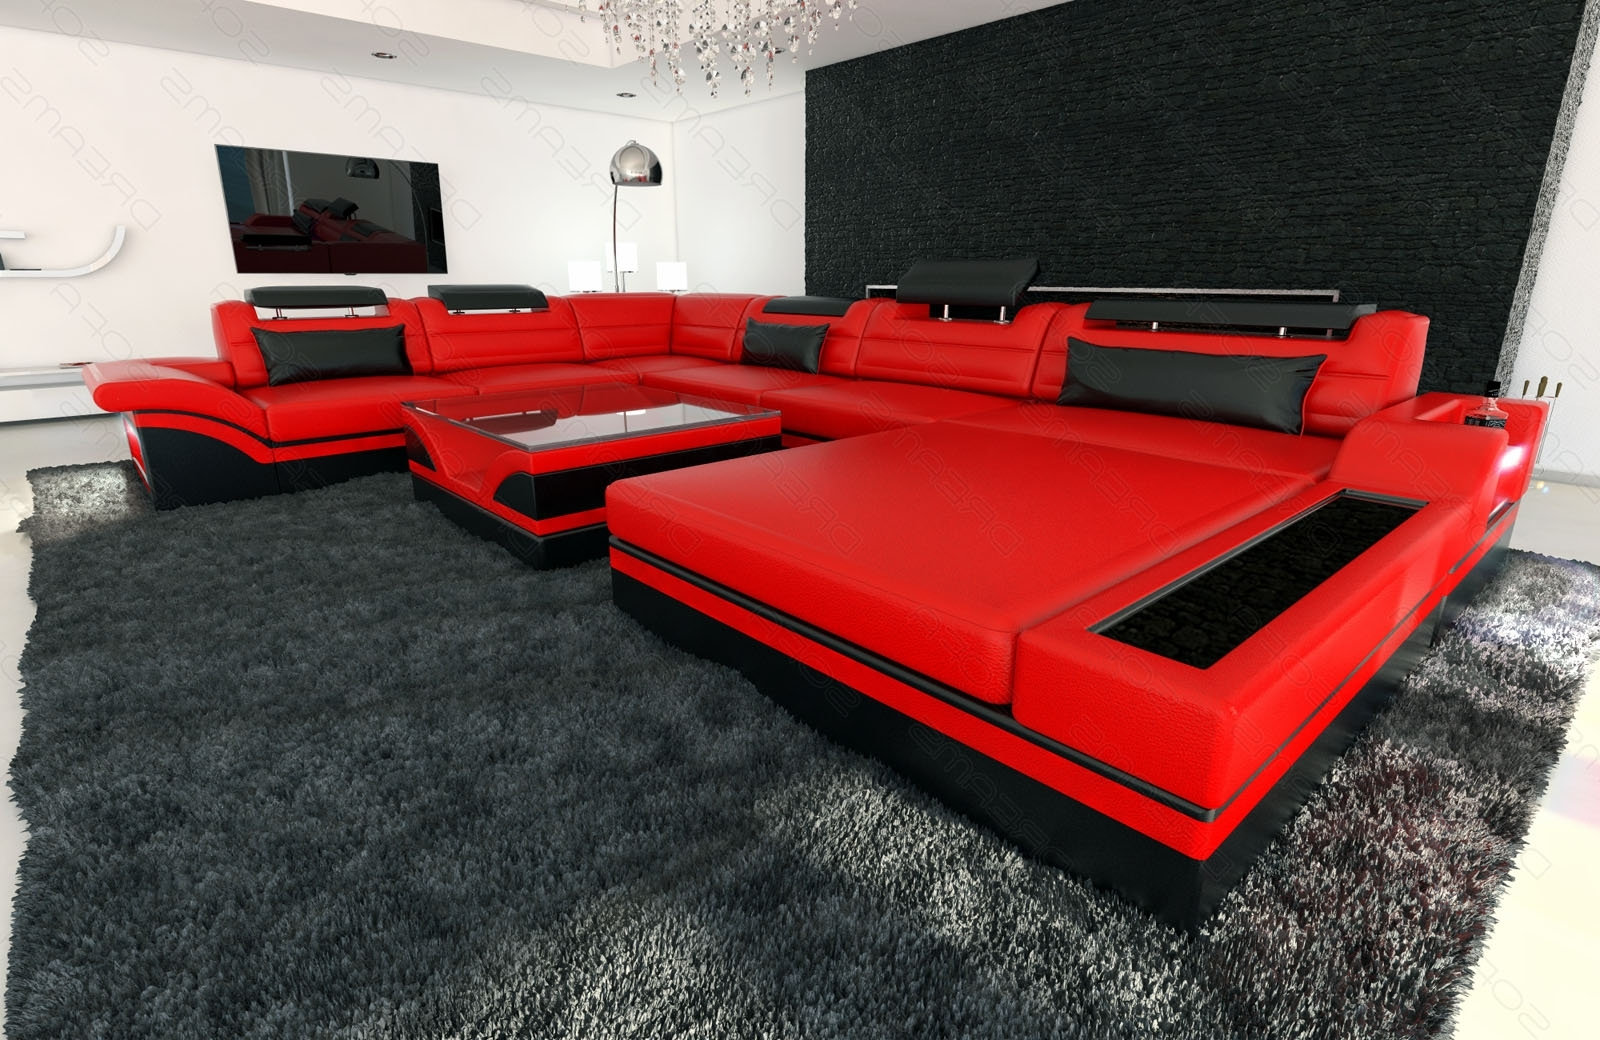 Red And Black Sofas Within Most Popular Design Sectional Sofa Mezzo Xxl With Led Lights Red Black (View 12 of 15)